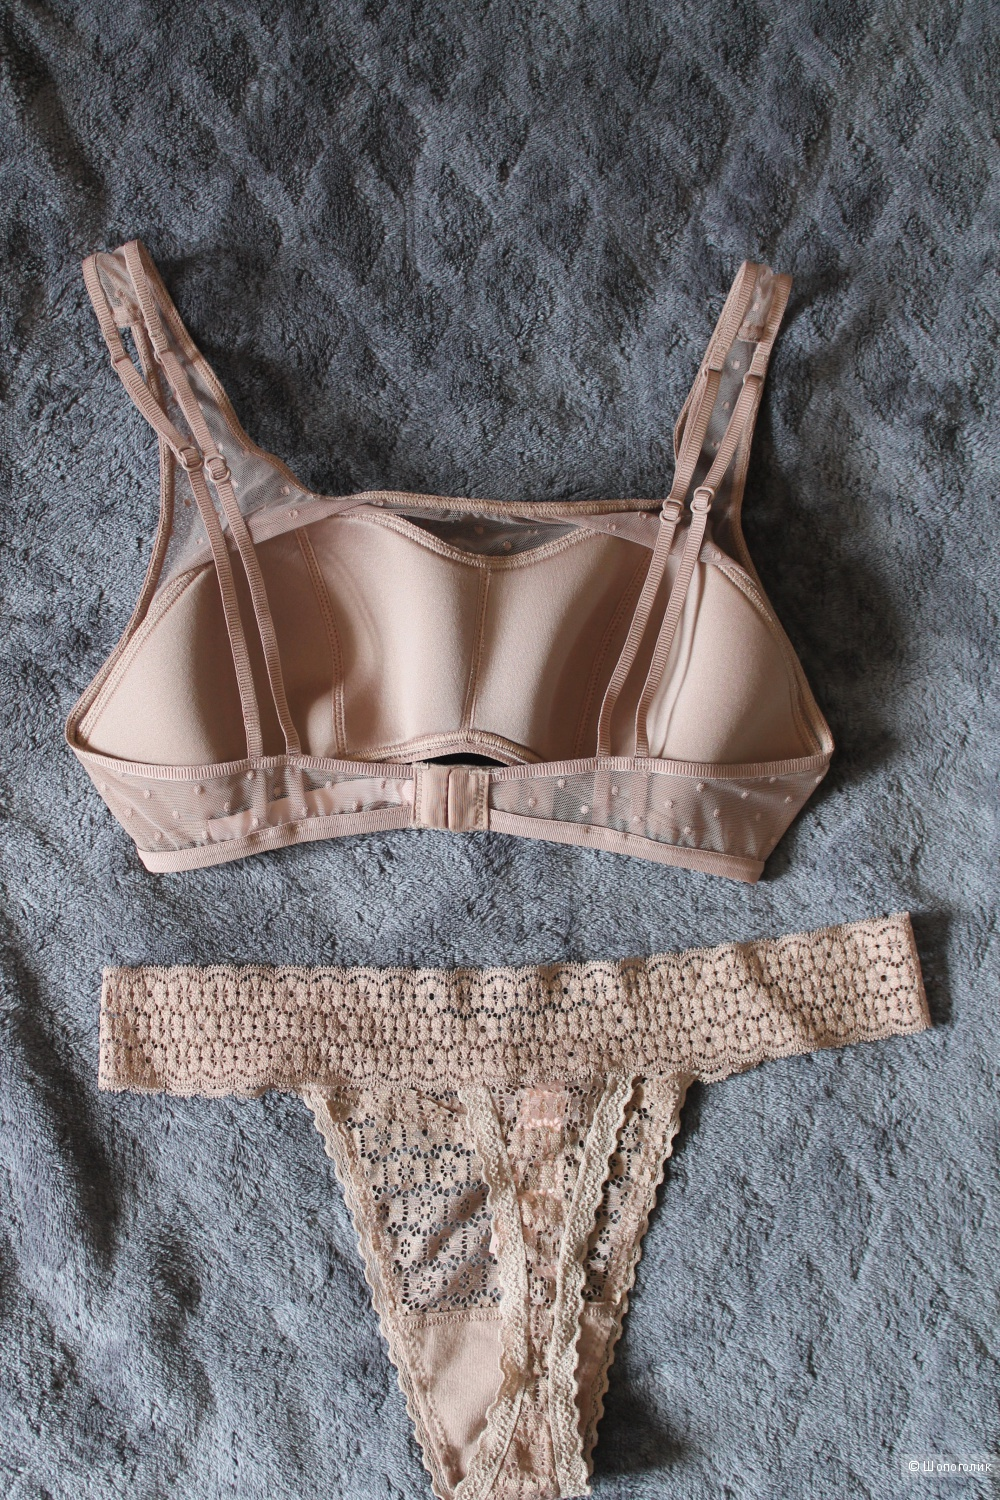 Victoria's Secret комплект Dot Mesh & Lace Scoop Bralette + Circle Lace Thong Panty верх S, низ М